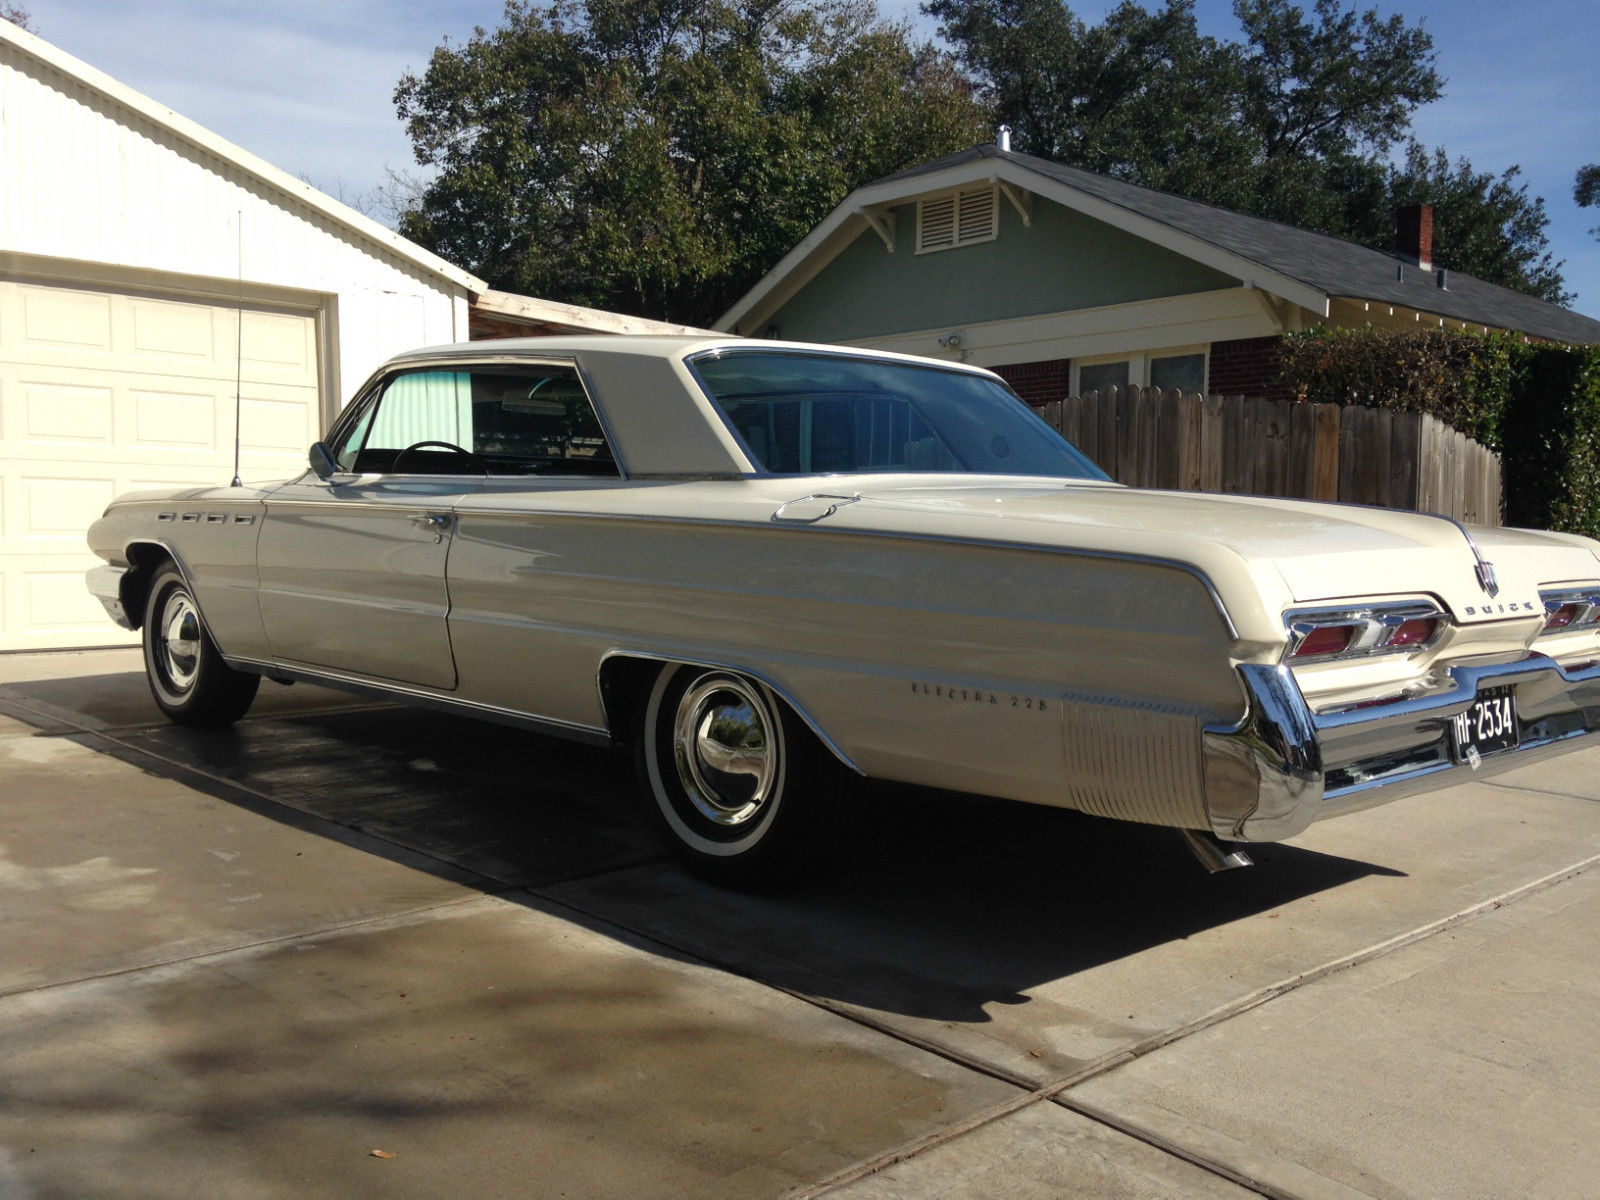 1962 Buick Electra 225 2 Door Hardtop For Sale In Houston